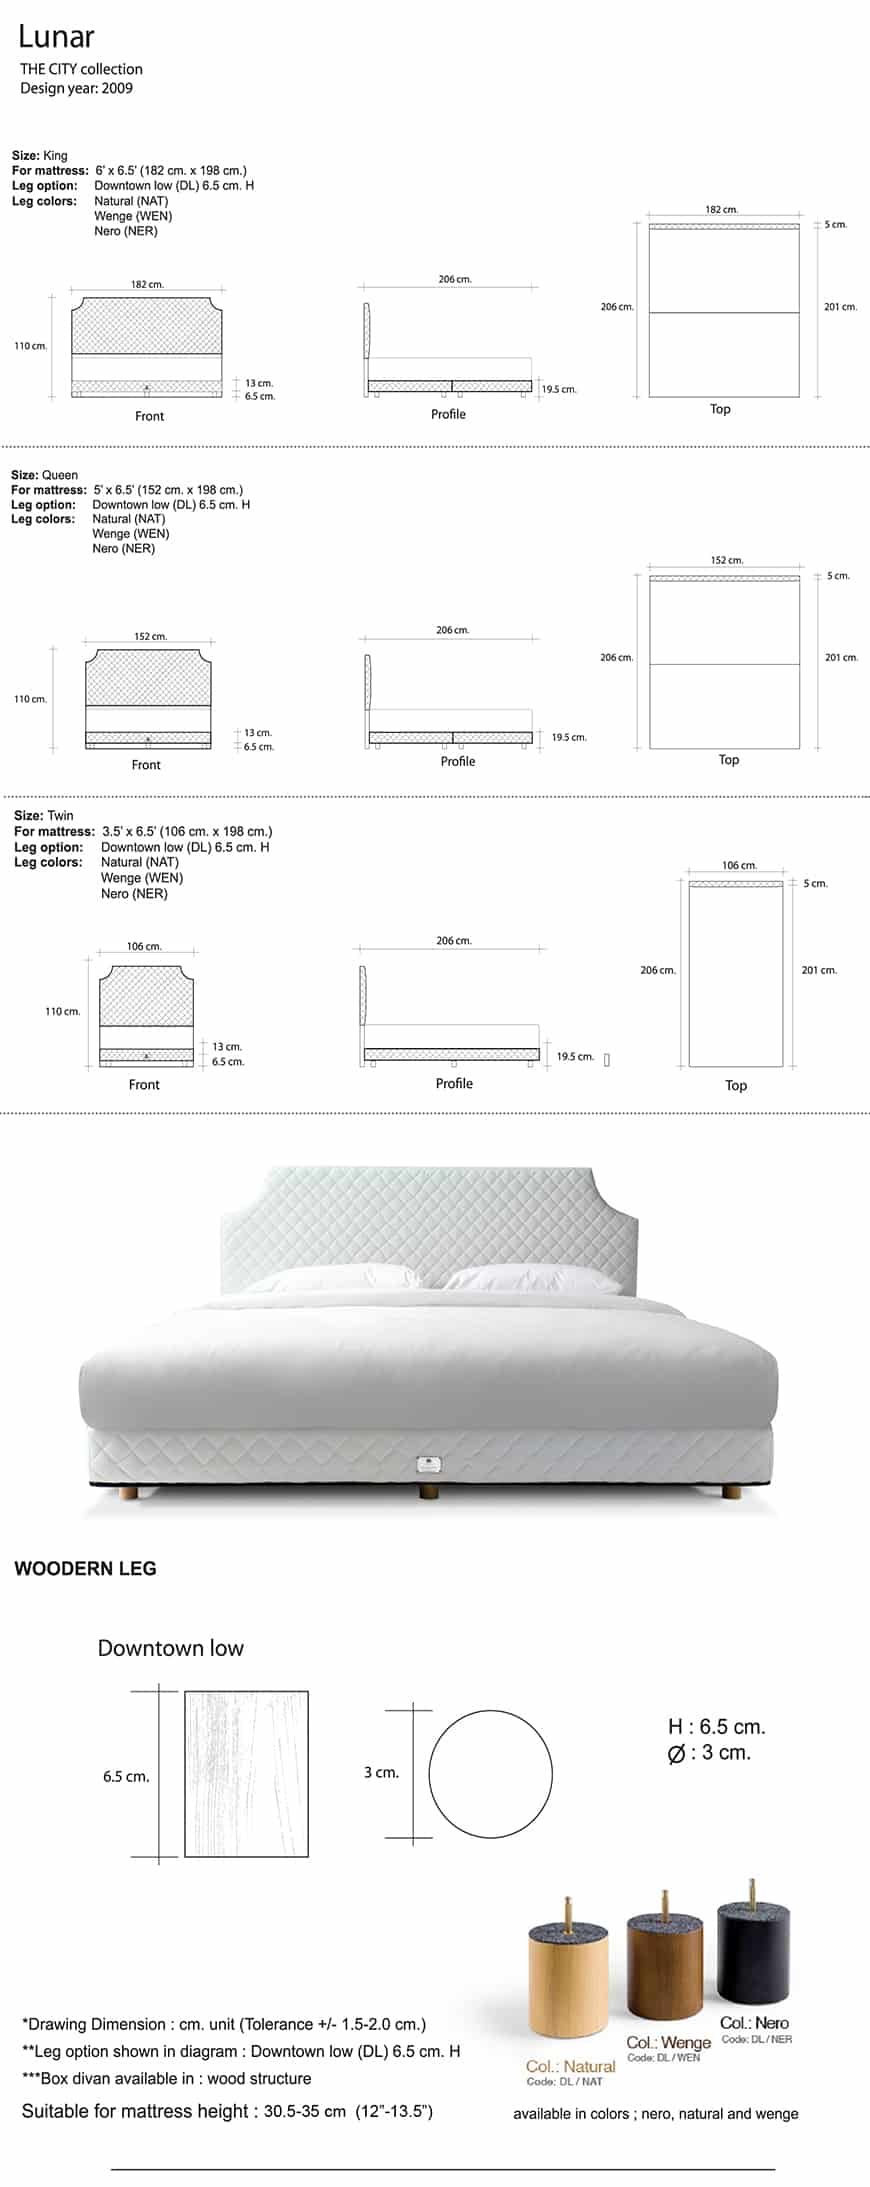 Lotus The City Bed | Collection - Loche 8